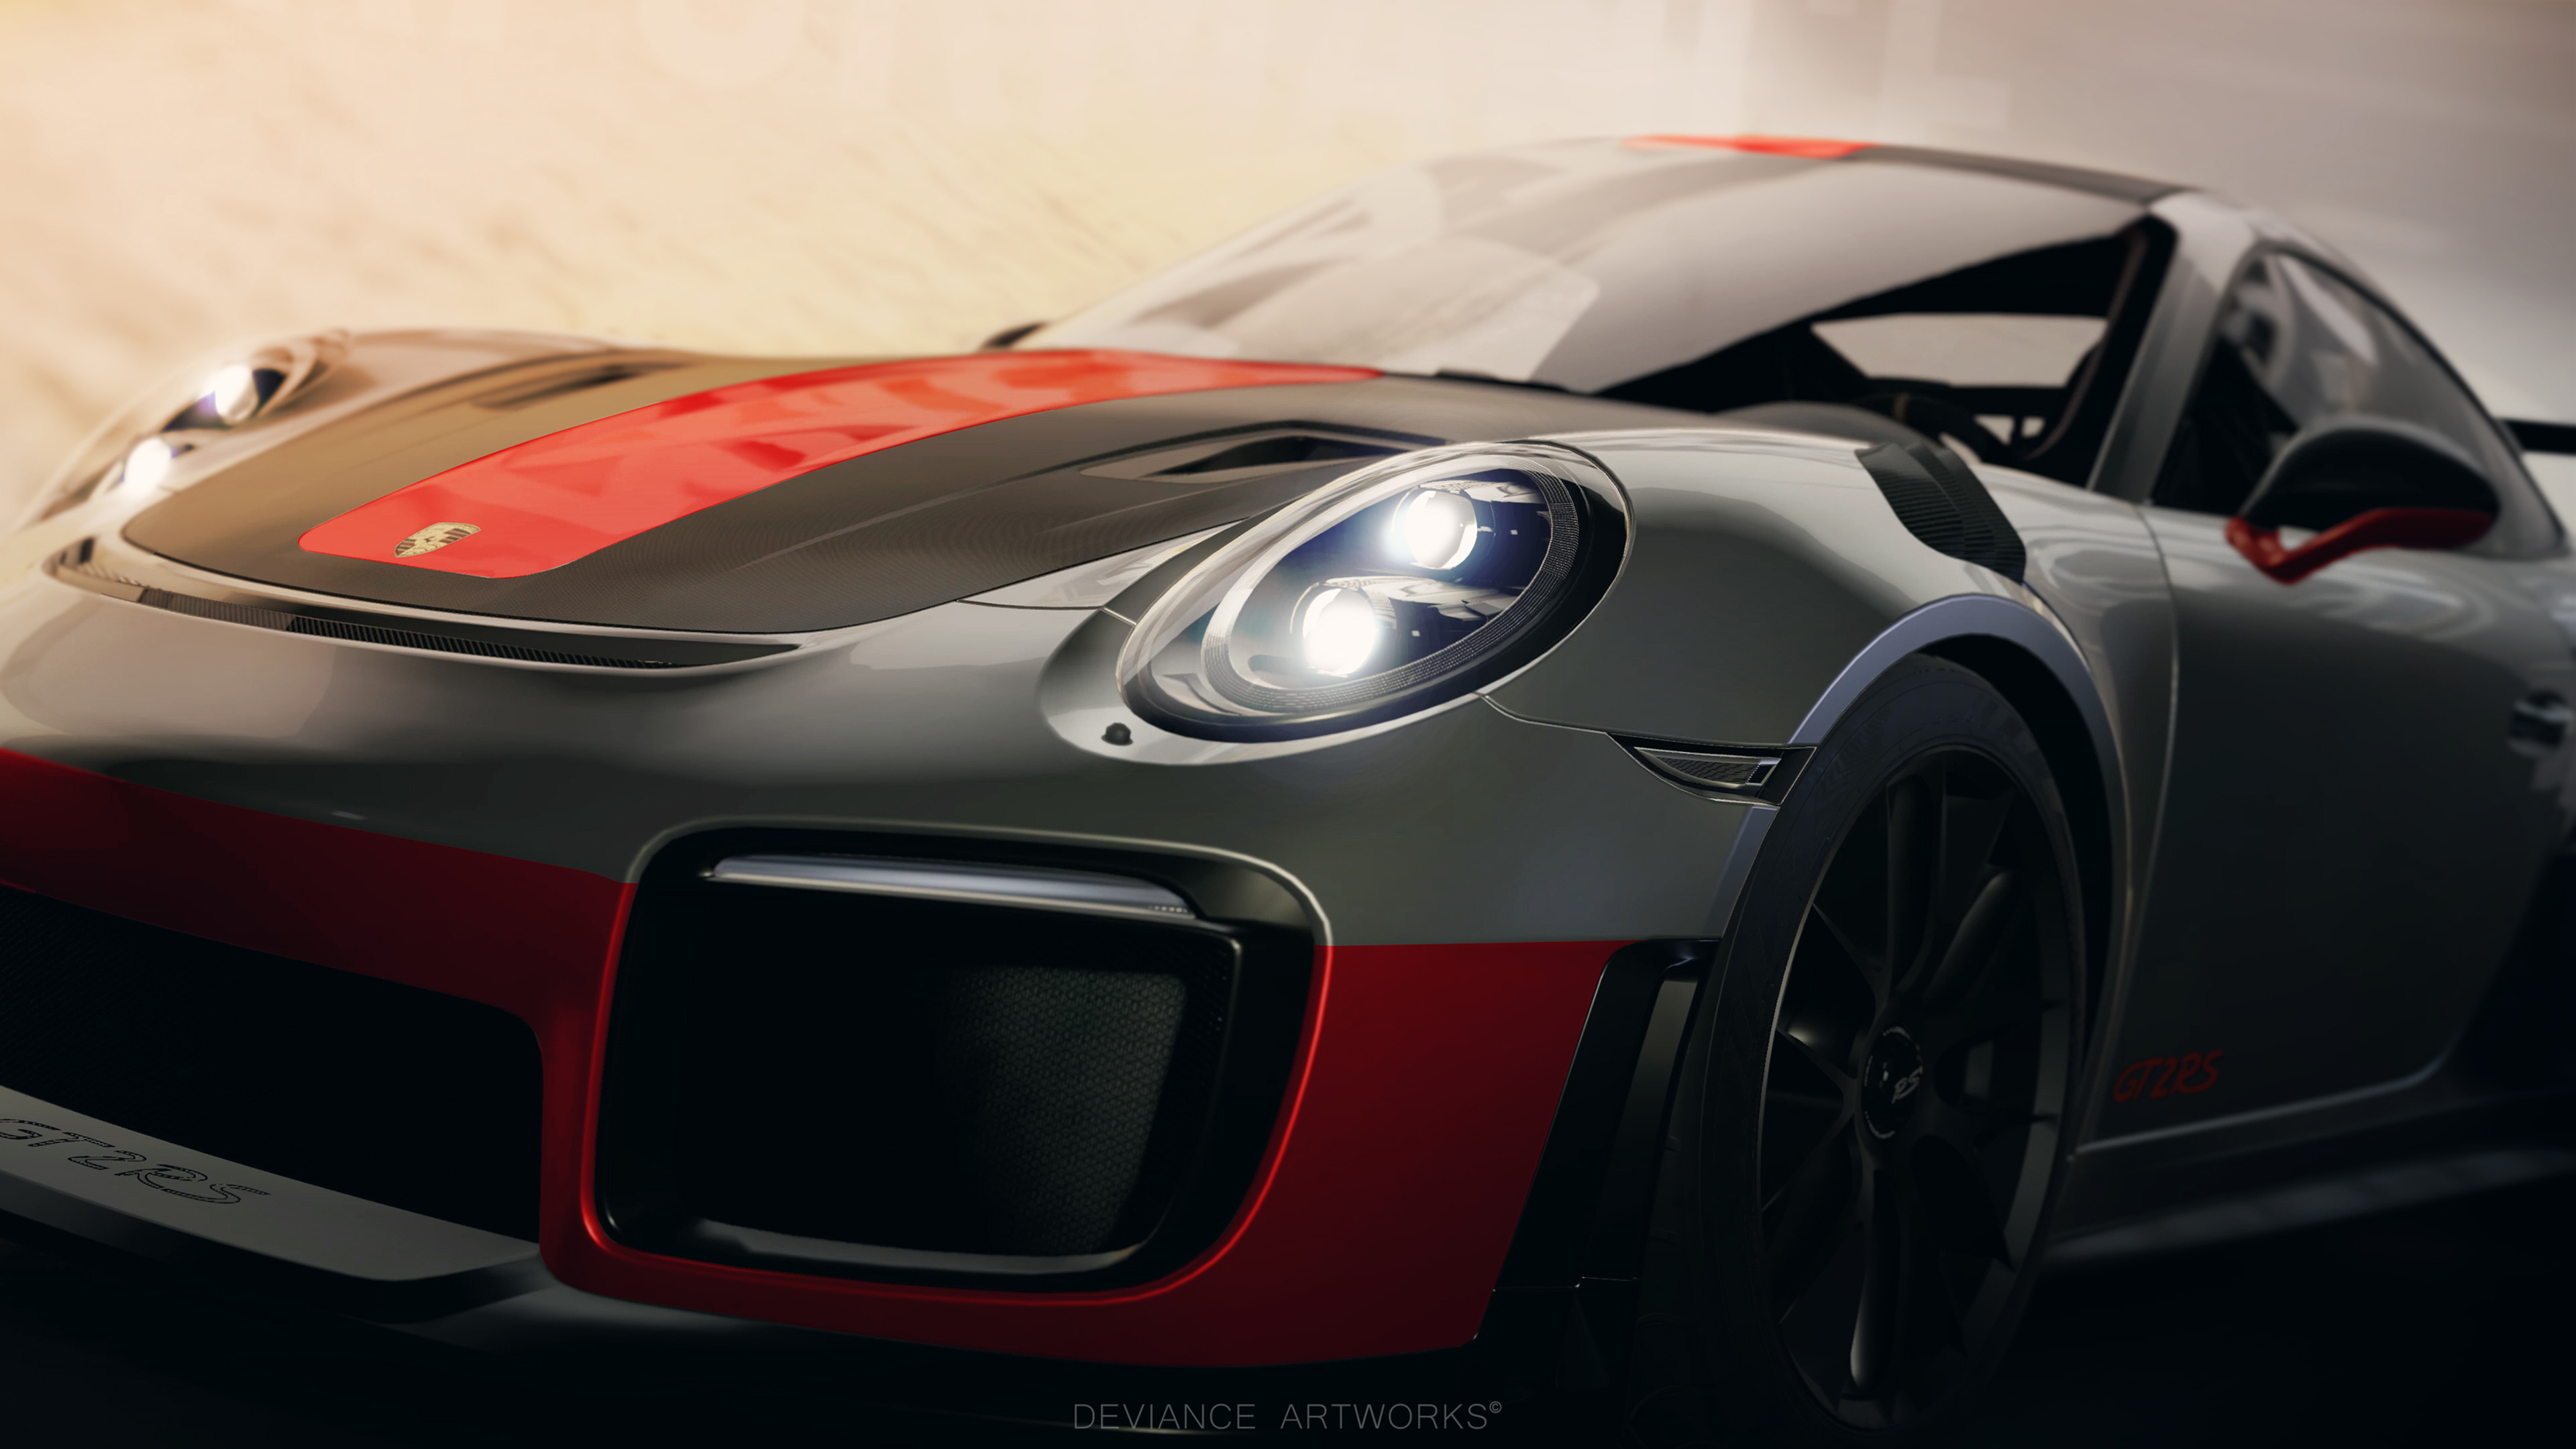 Forza Motorsport 7 Wallpapers Ultra Hd Gaming Backgrounds: Porsche 911 GT2 RS Forza Motorsport 7 Wallpaper